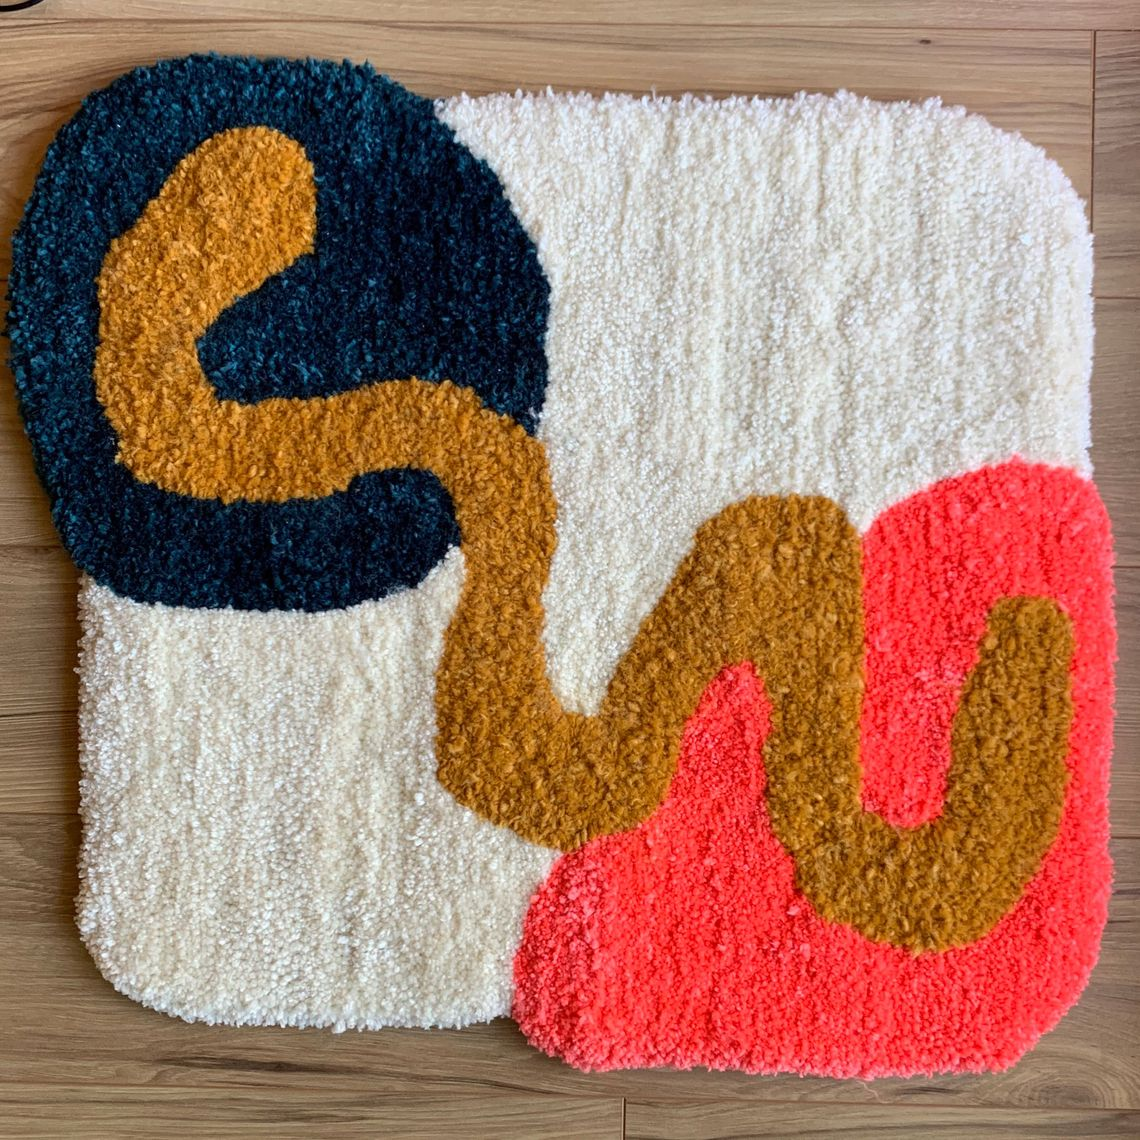 Rug Tufting The Tiktok Design Trend Of